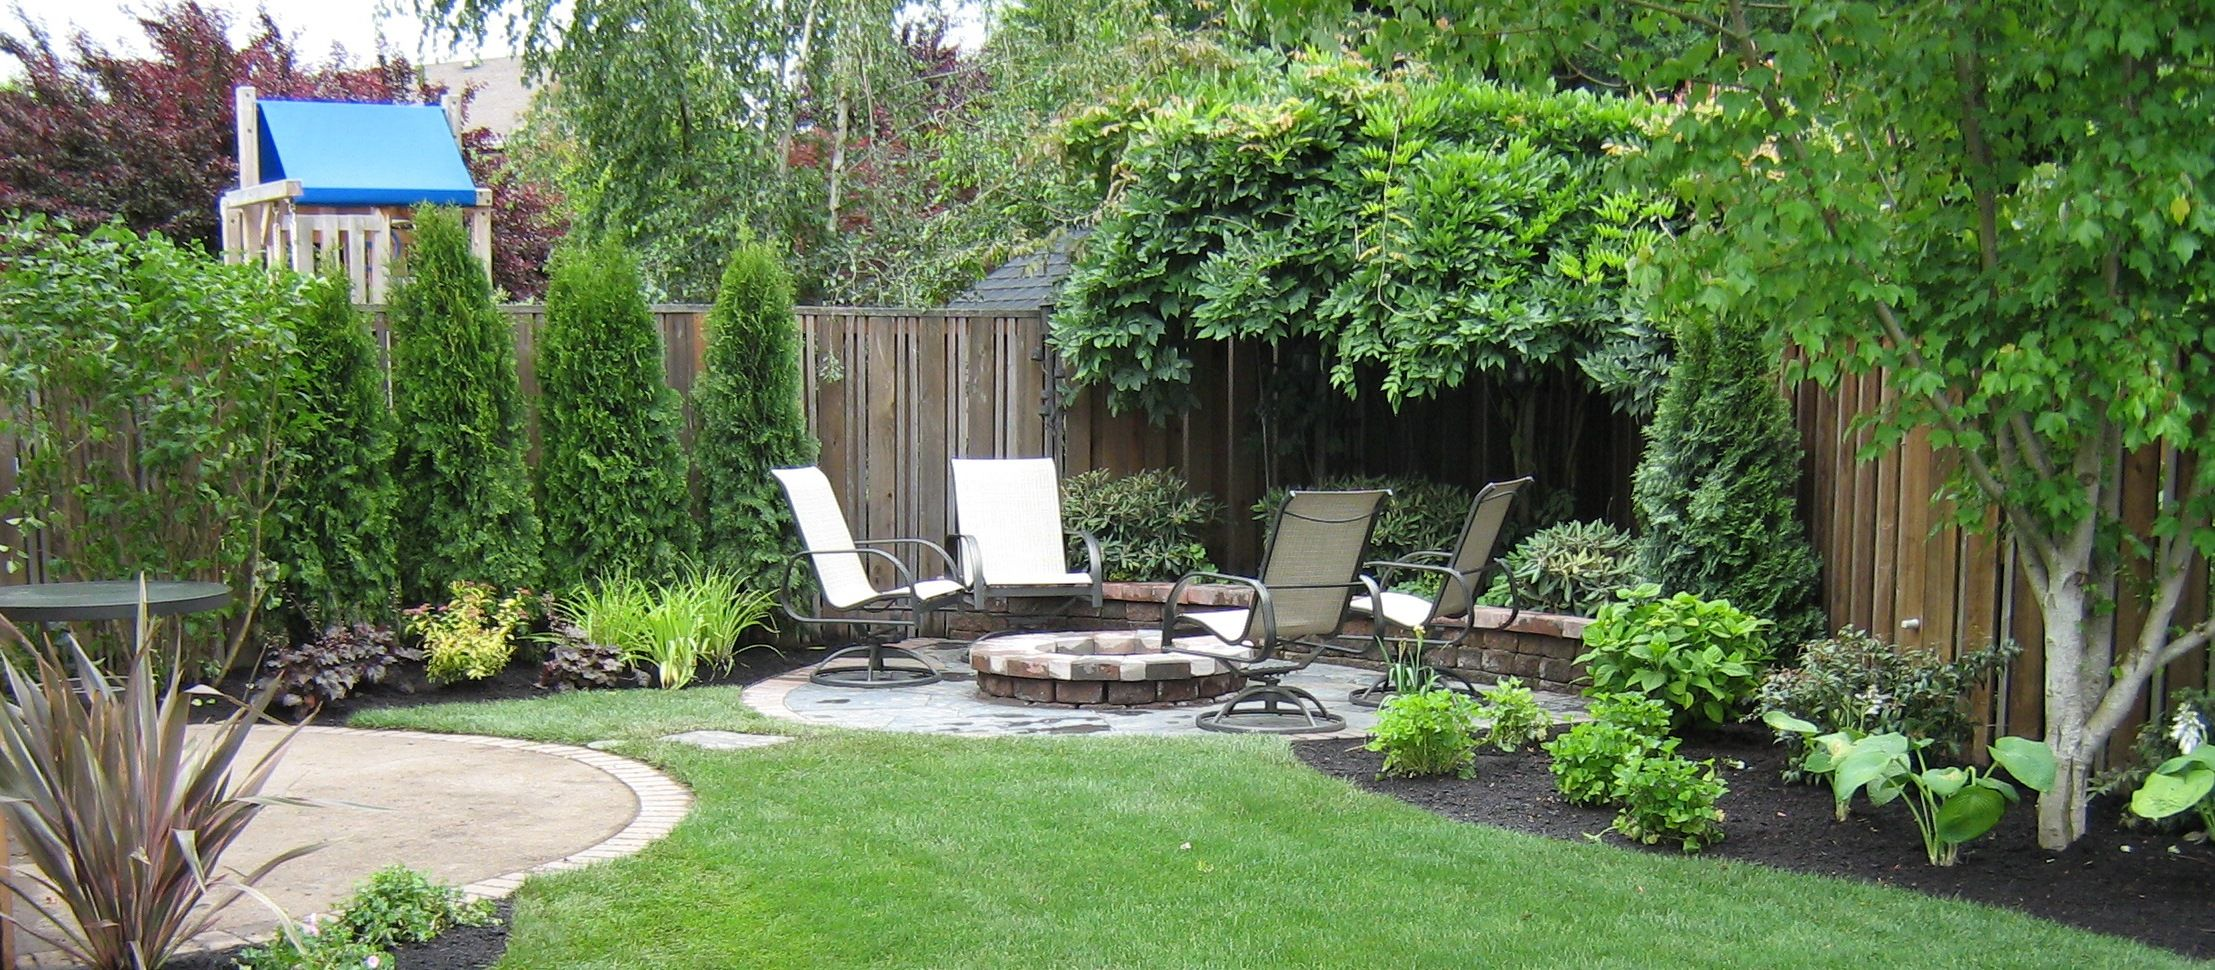 Small backyard landscaping ideas photos garden design for Back garden landscape designs